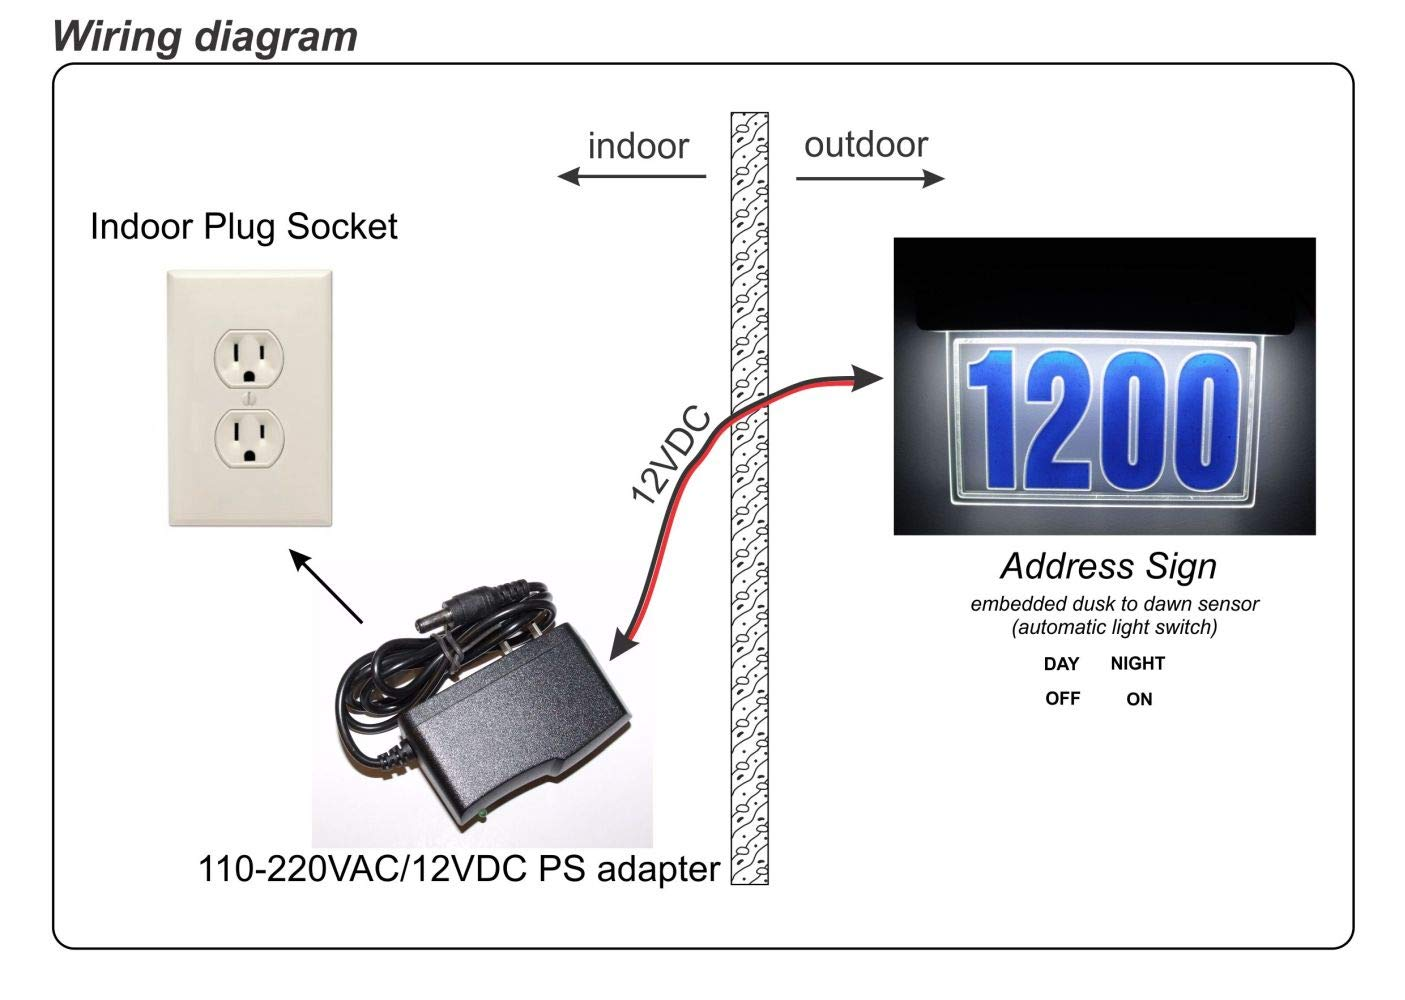 Wiring Diagram Wiring Imgs In Addition Emergency Exit Light Wiring